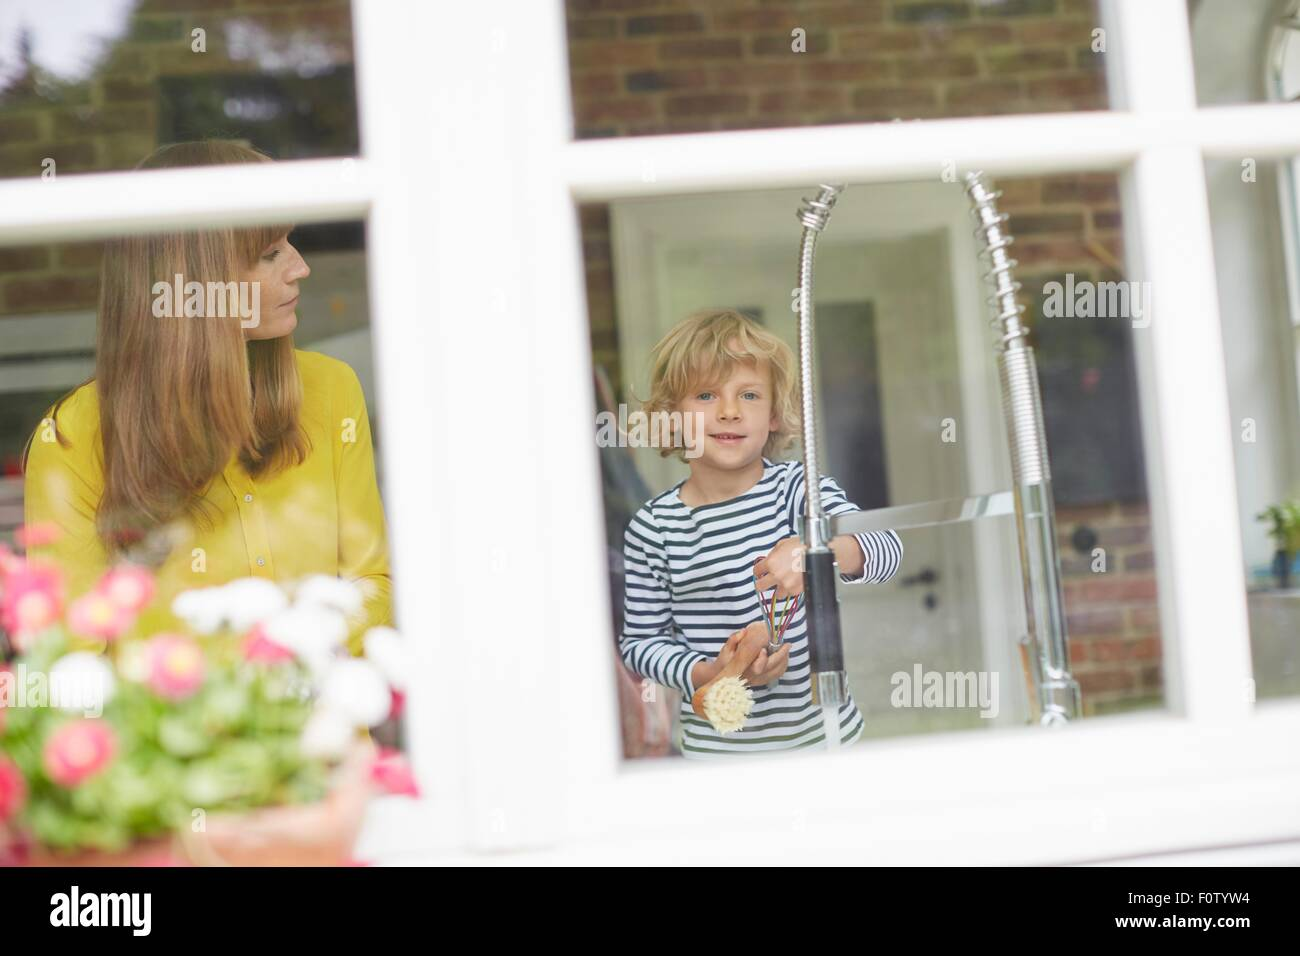 Mother and son doing washing up, view through window - Stock Image